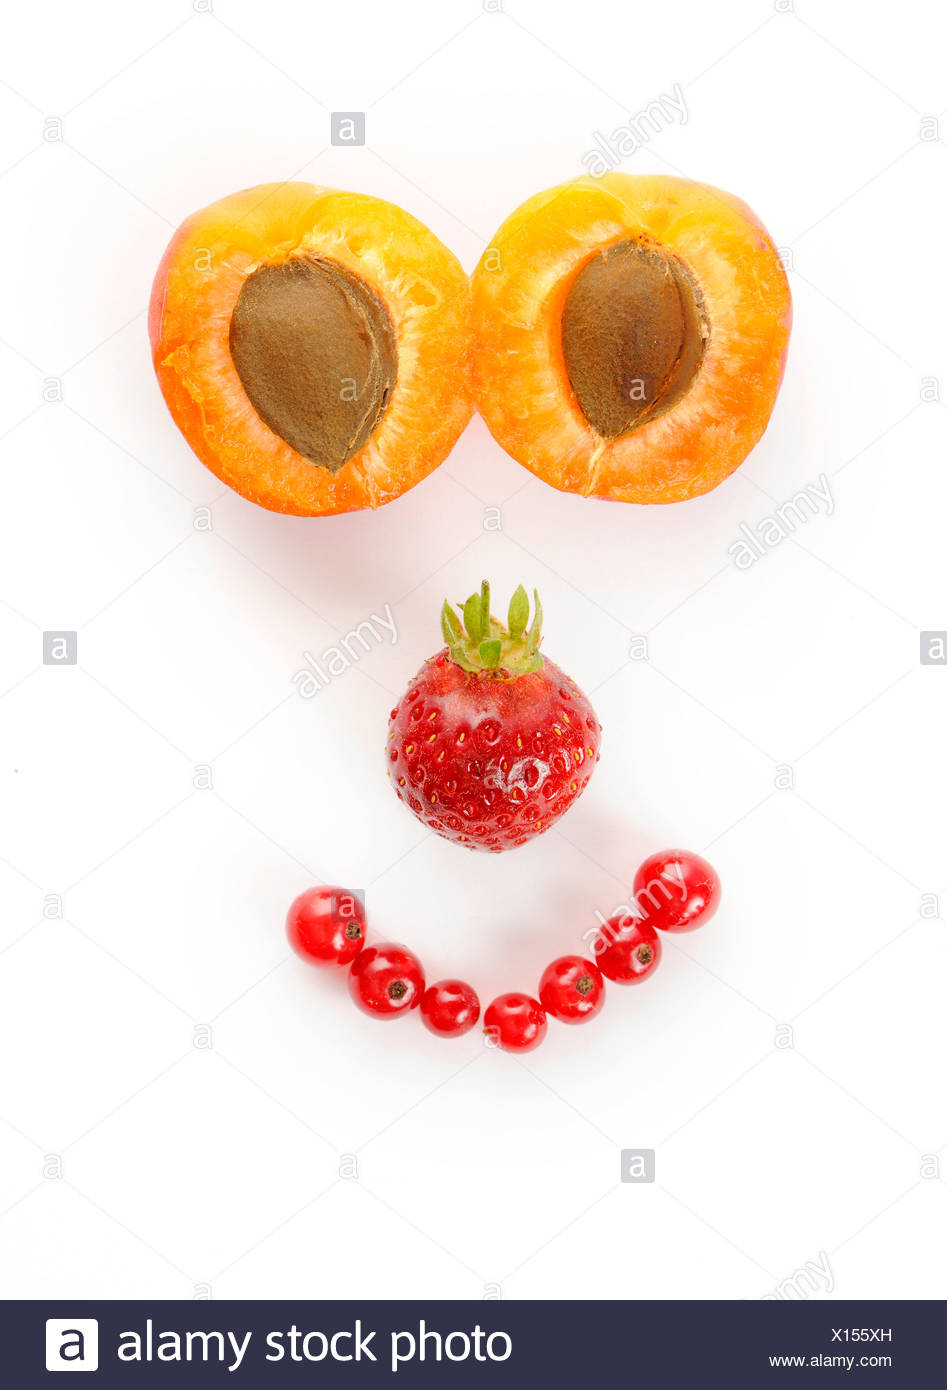 Face made of fruit, Apricots (Prunus armeniaca), Strawberries (Fragaria), Currants (Ribes) Stock Photo